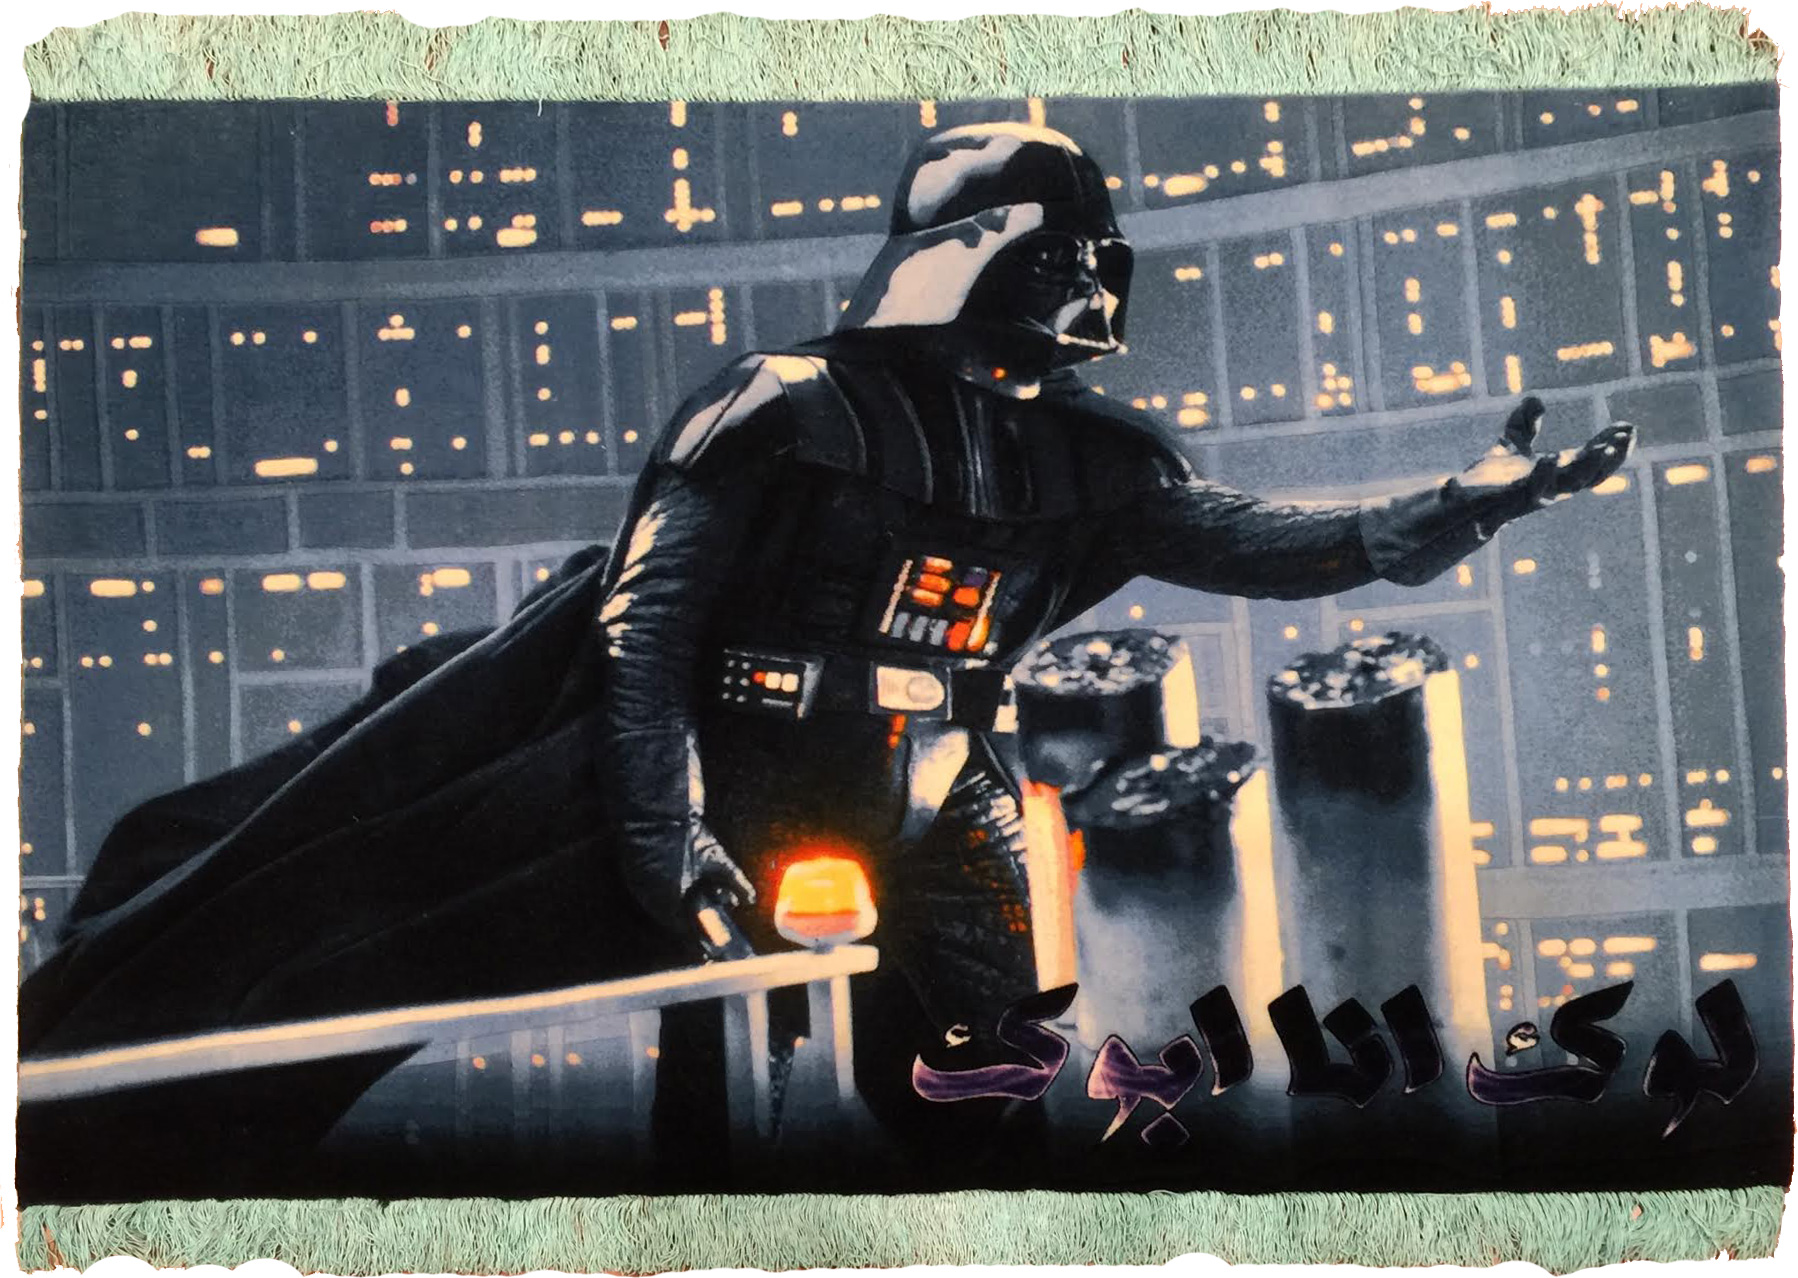 'Darth Vader' shown in colour by Hadi Maktabi is an impressive realization in carpet form of the most memorable scene in all of Star Wars. | Image courtesy of Hadi Maktabi.